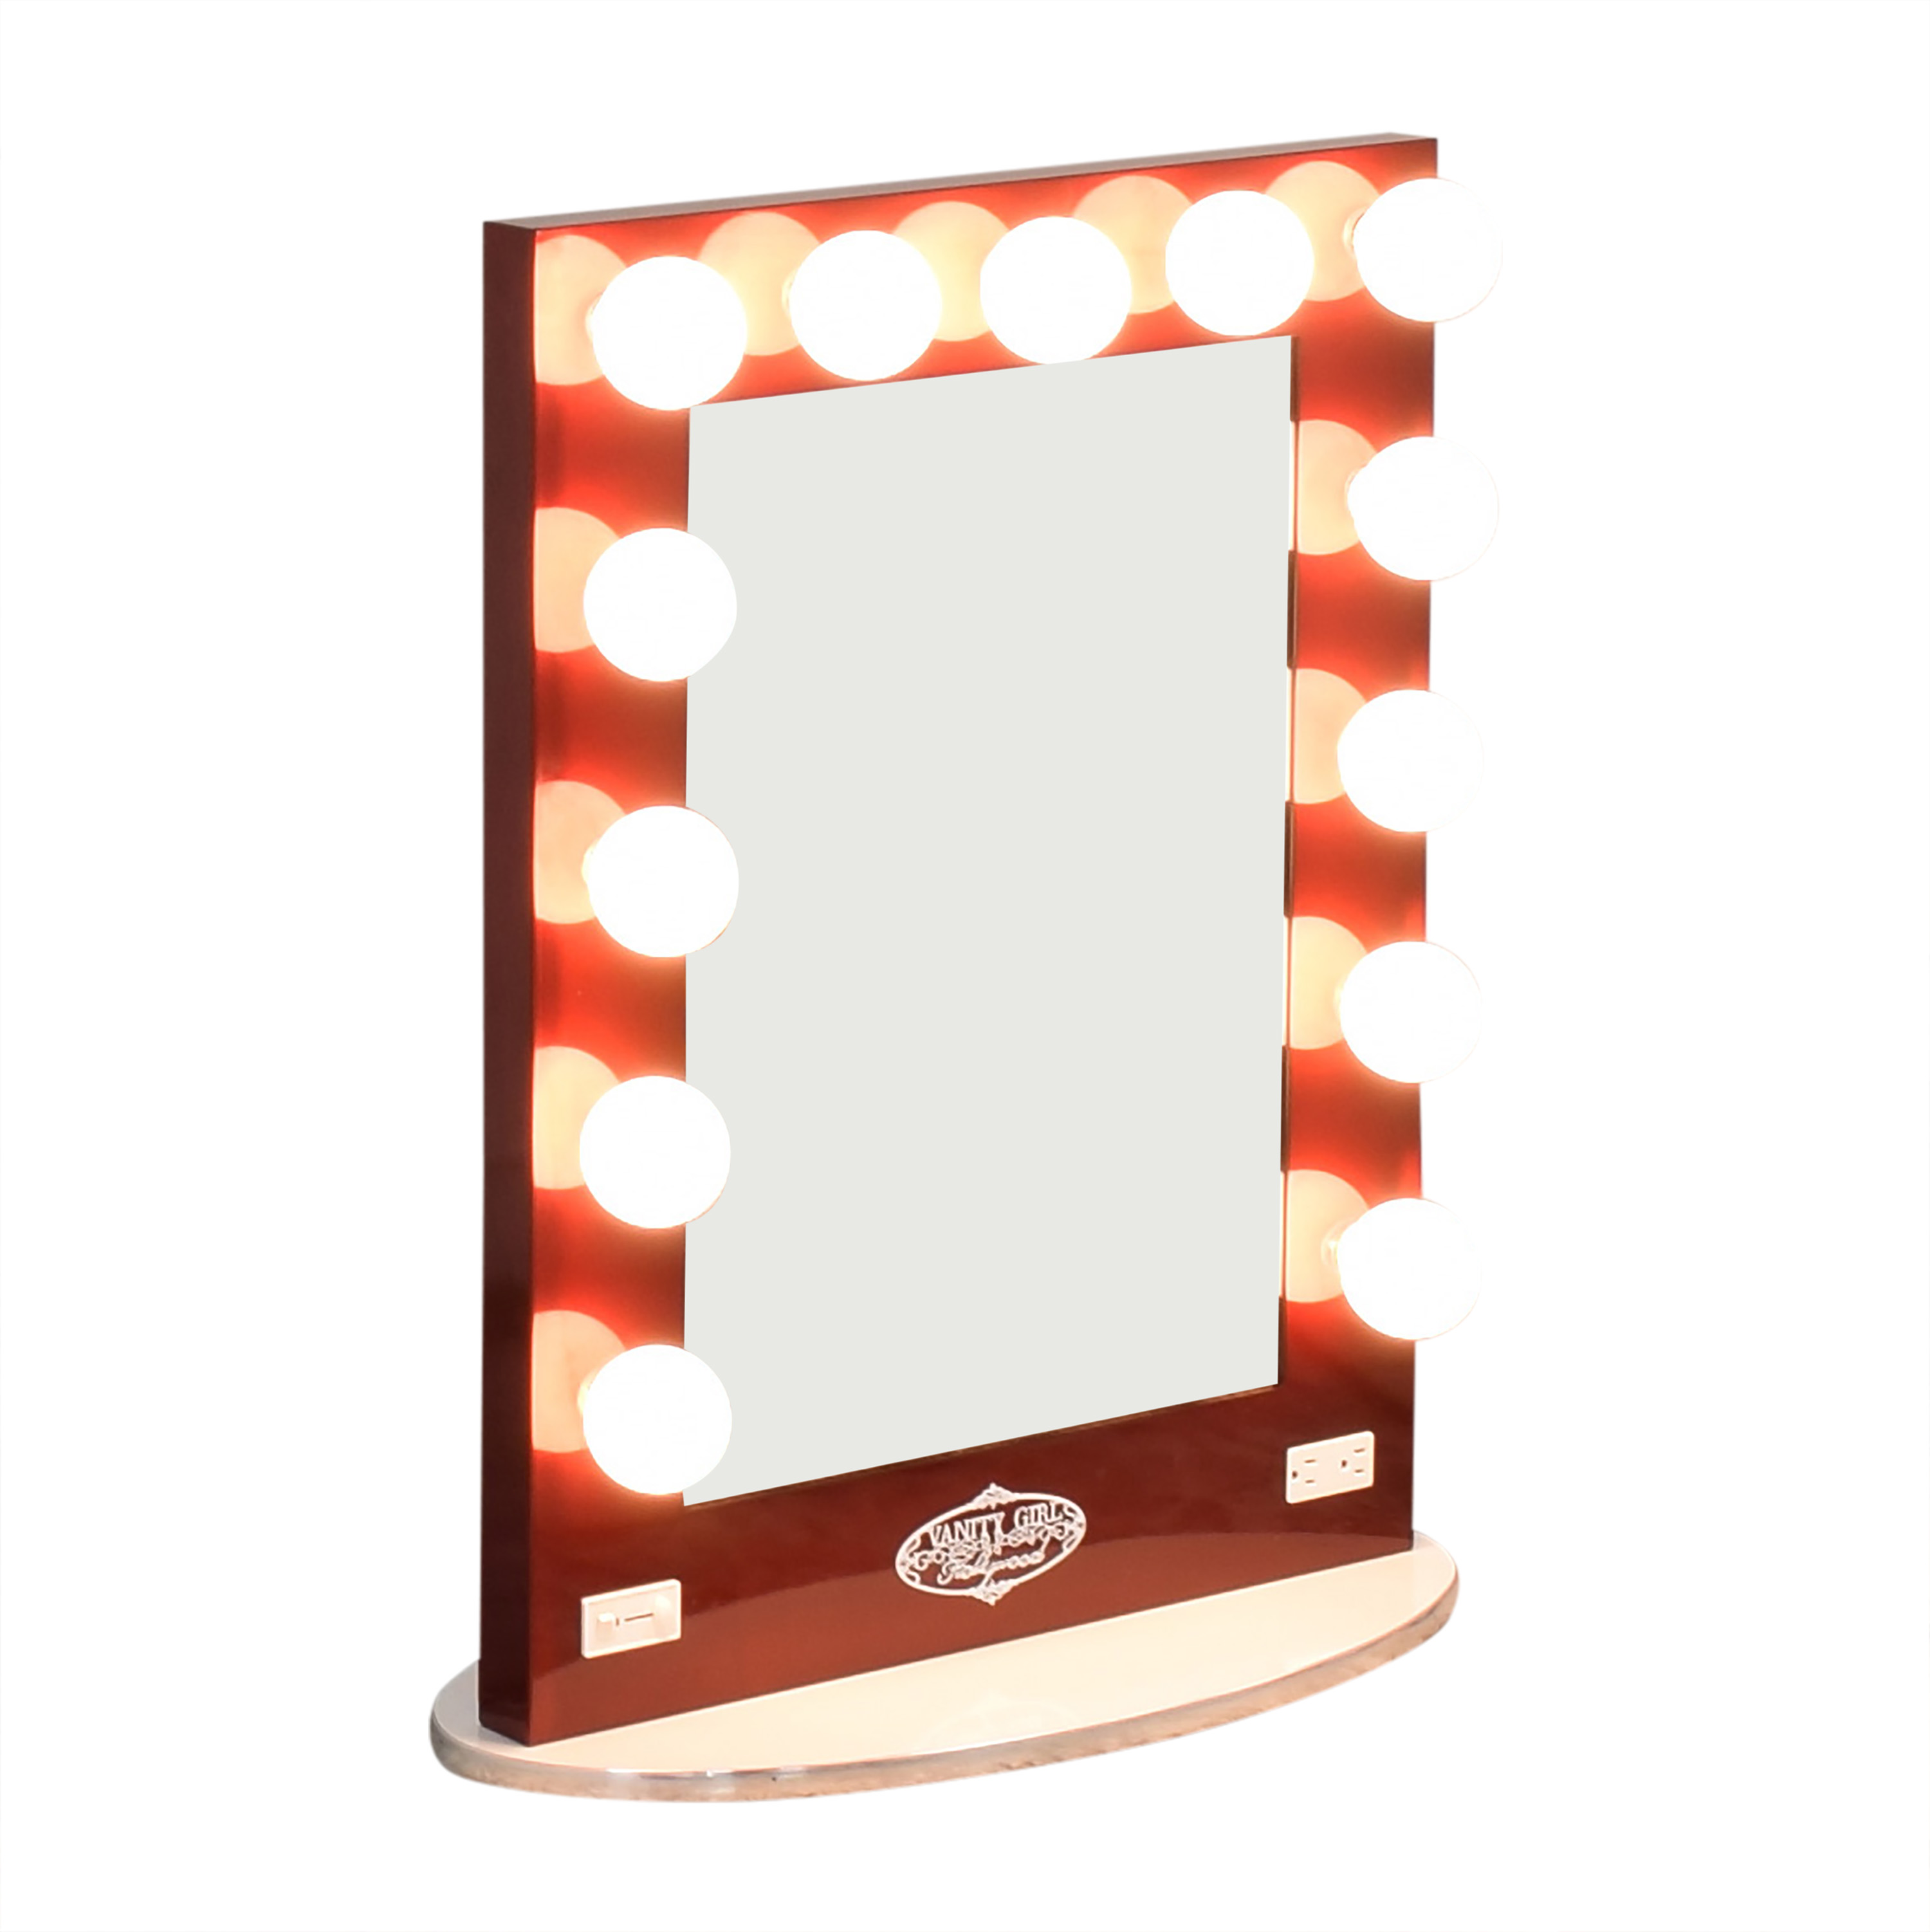 Vanity Girl Hollywood Vanity Girl Hollywood Broadway Lighted Mirror nj